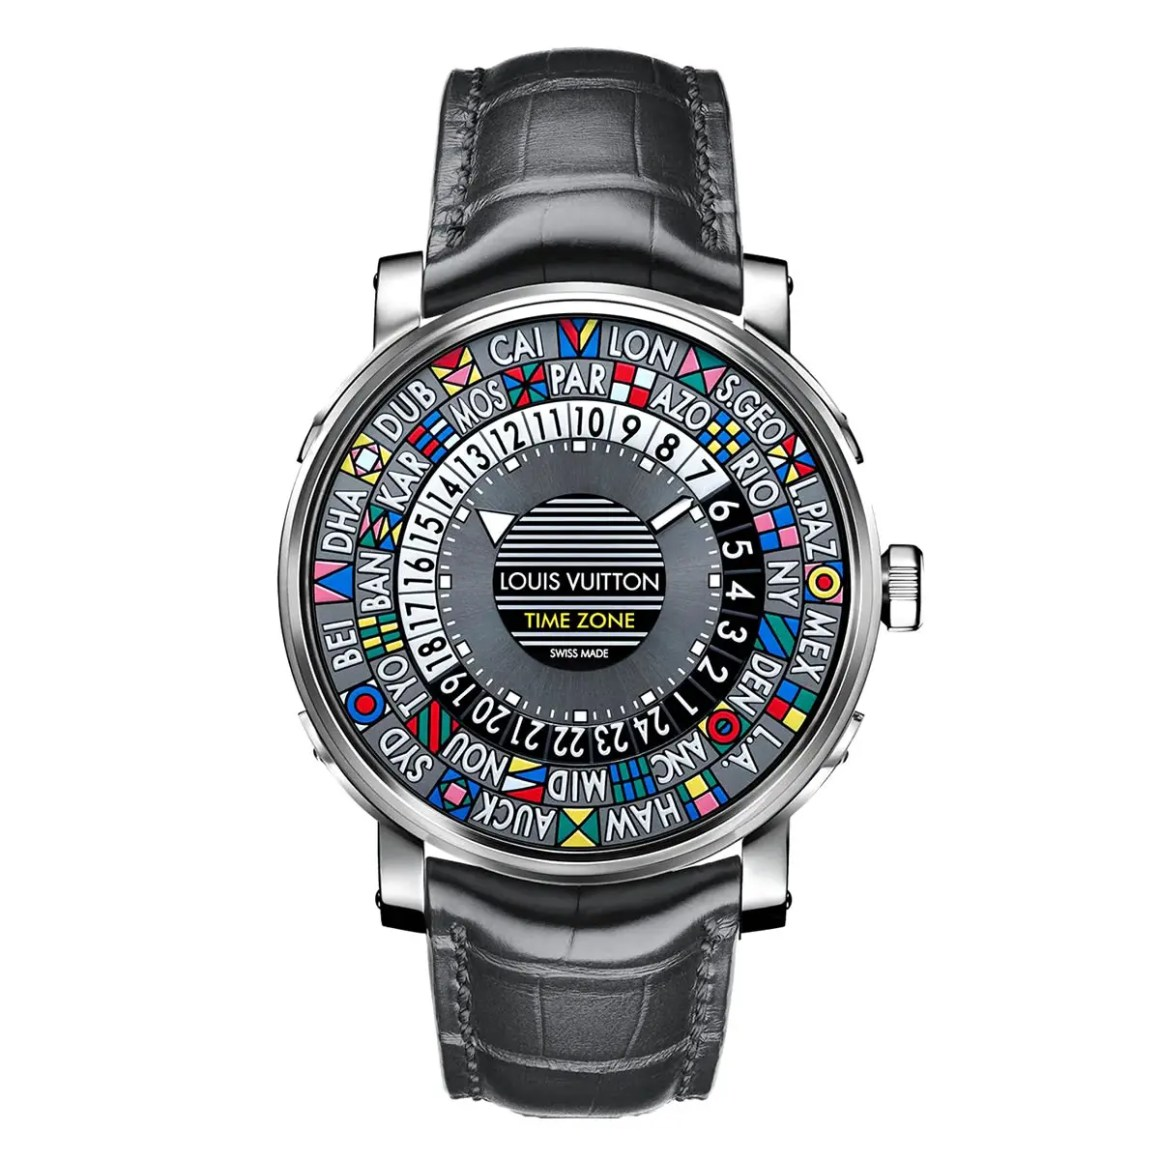 Louis Vuitton Escale Time Zone 39 Men's Fashion Watch